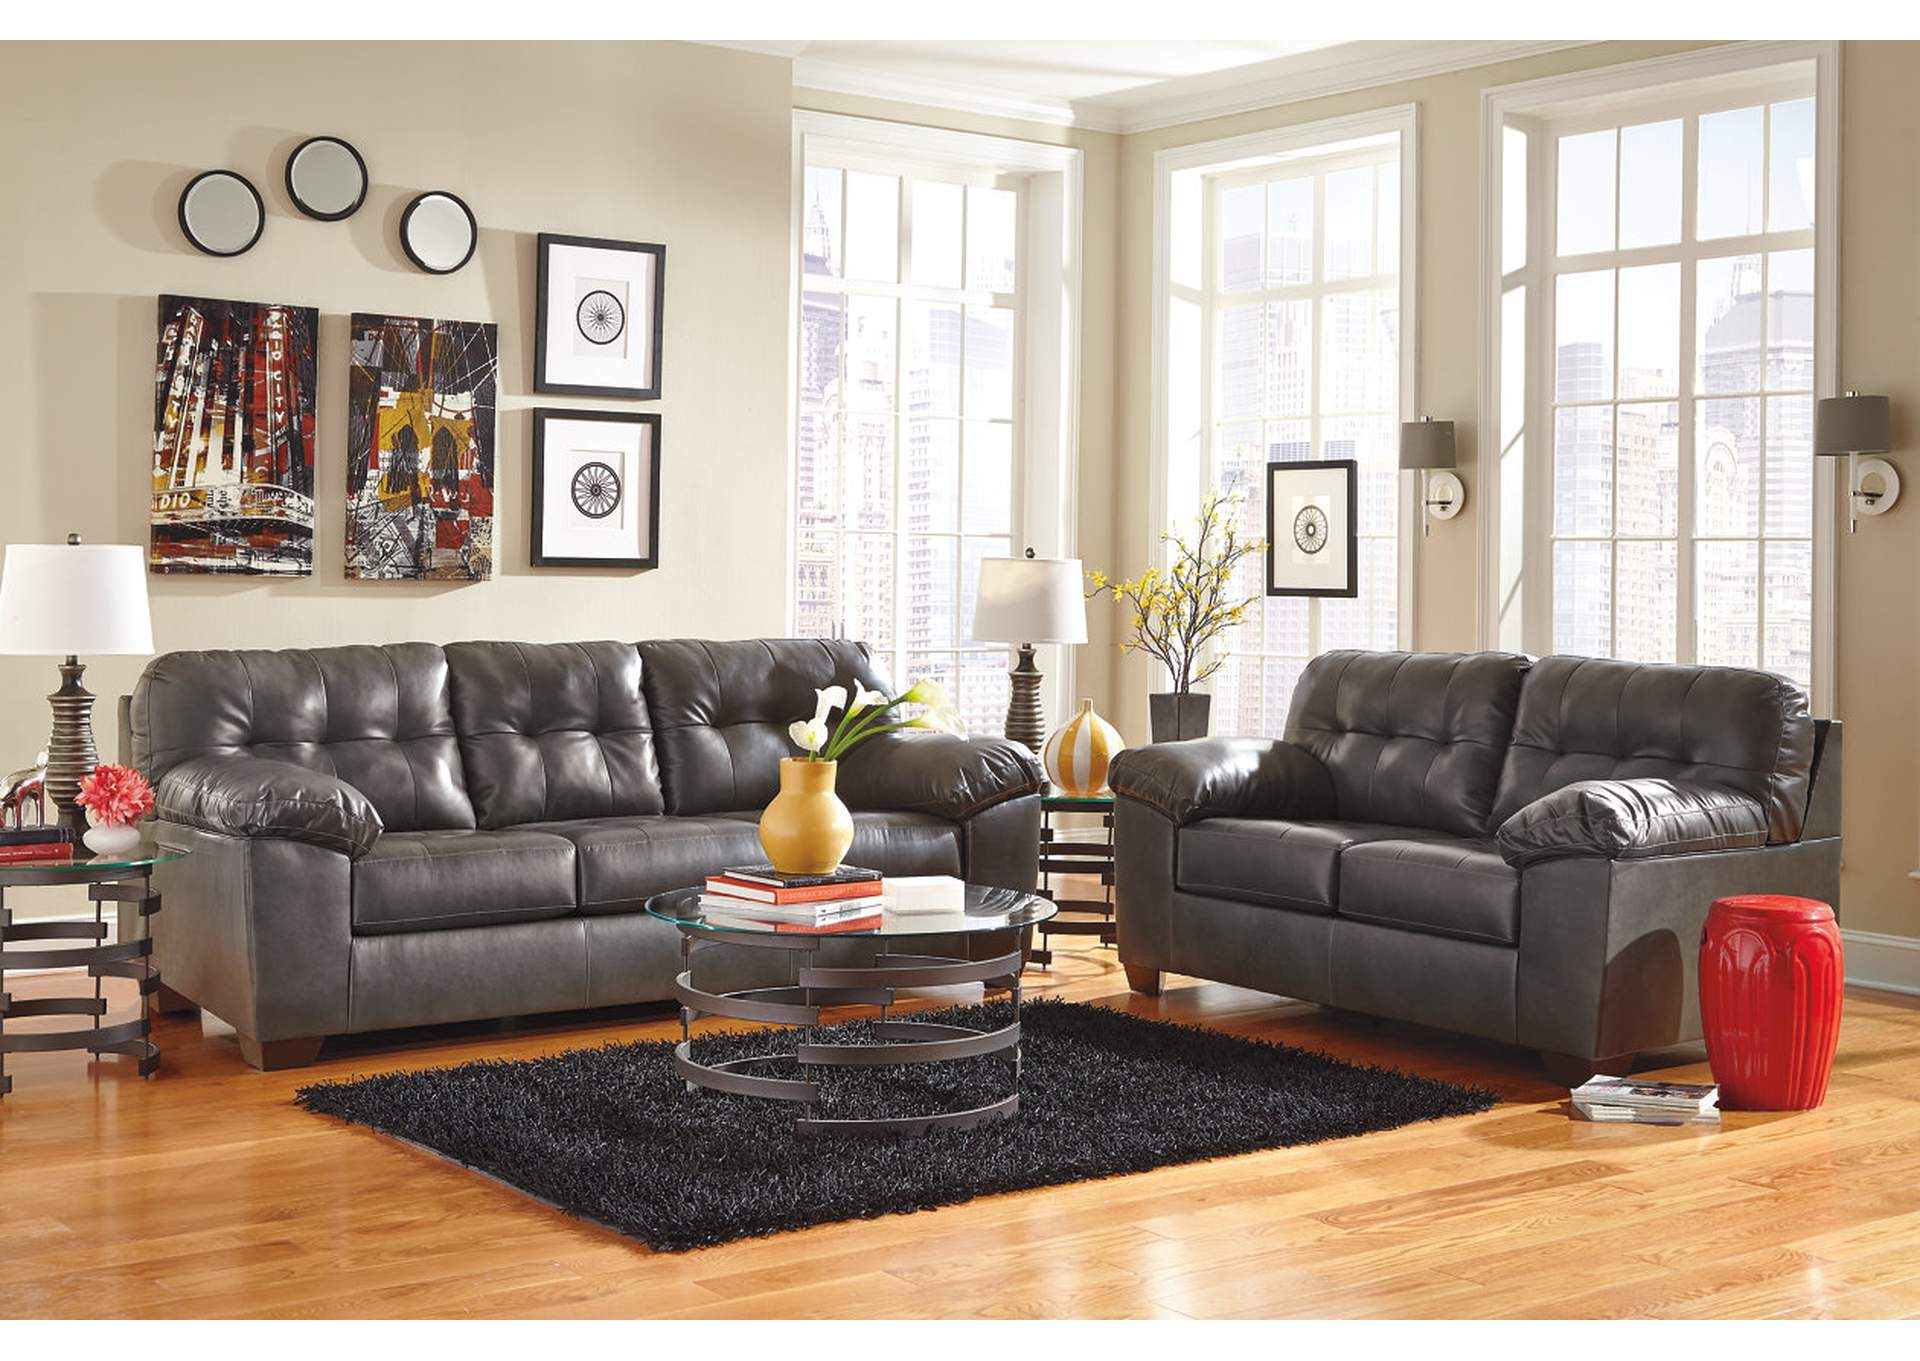 Alliston DuraBlend Gray Sofa & Loveseat,Signature Design by Ashley